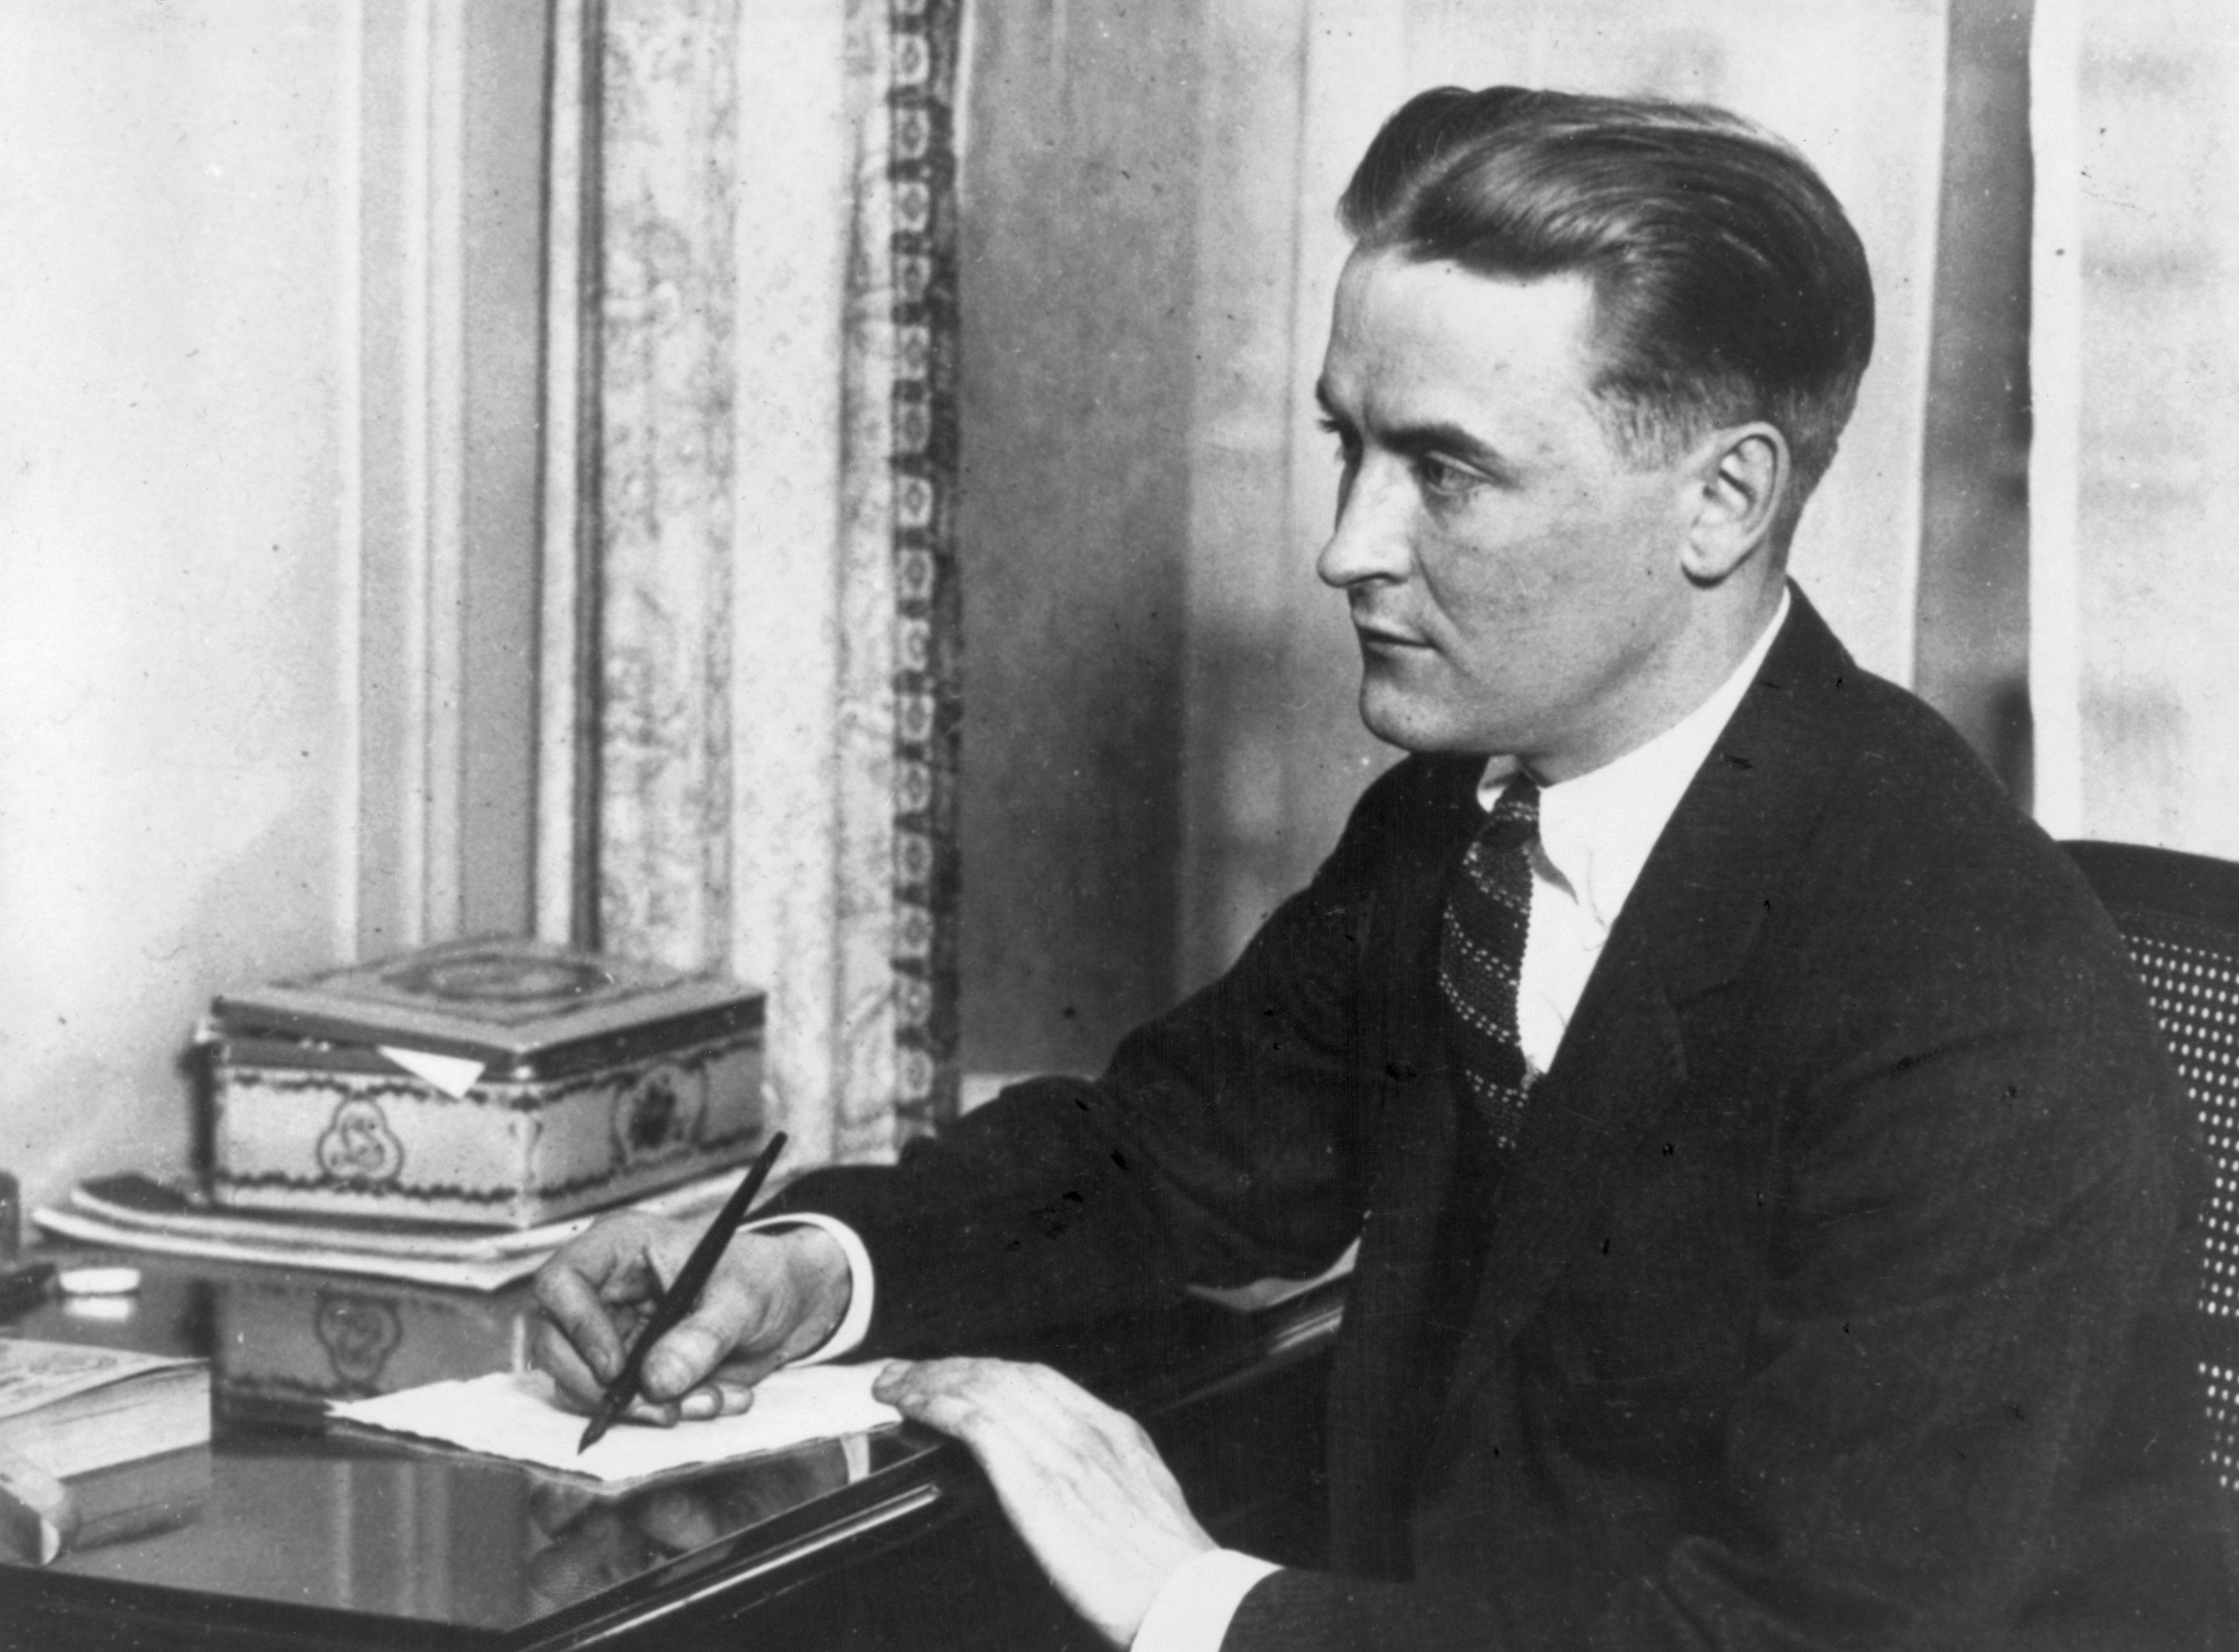 ORIGINAL CAPTION READS: Scott Fitzgerald (1896-1940), American writer.  Born in  St. Paul, Minnesota, and was an officer in World War I.  He was also a scriptwriter in Hollywood, and famed as a chronicler of the Jazz Age.  His Books included 'This Side of Paradise,' 'The Great Gatsby,' 'Tender is the Night,' and 'All the Sad Yound Men.'  He is shown here seated at a desk, writing with a pen.  Undated photograph.